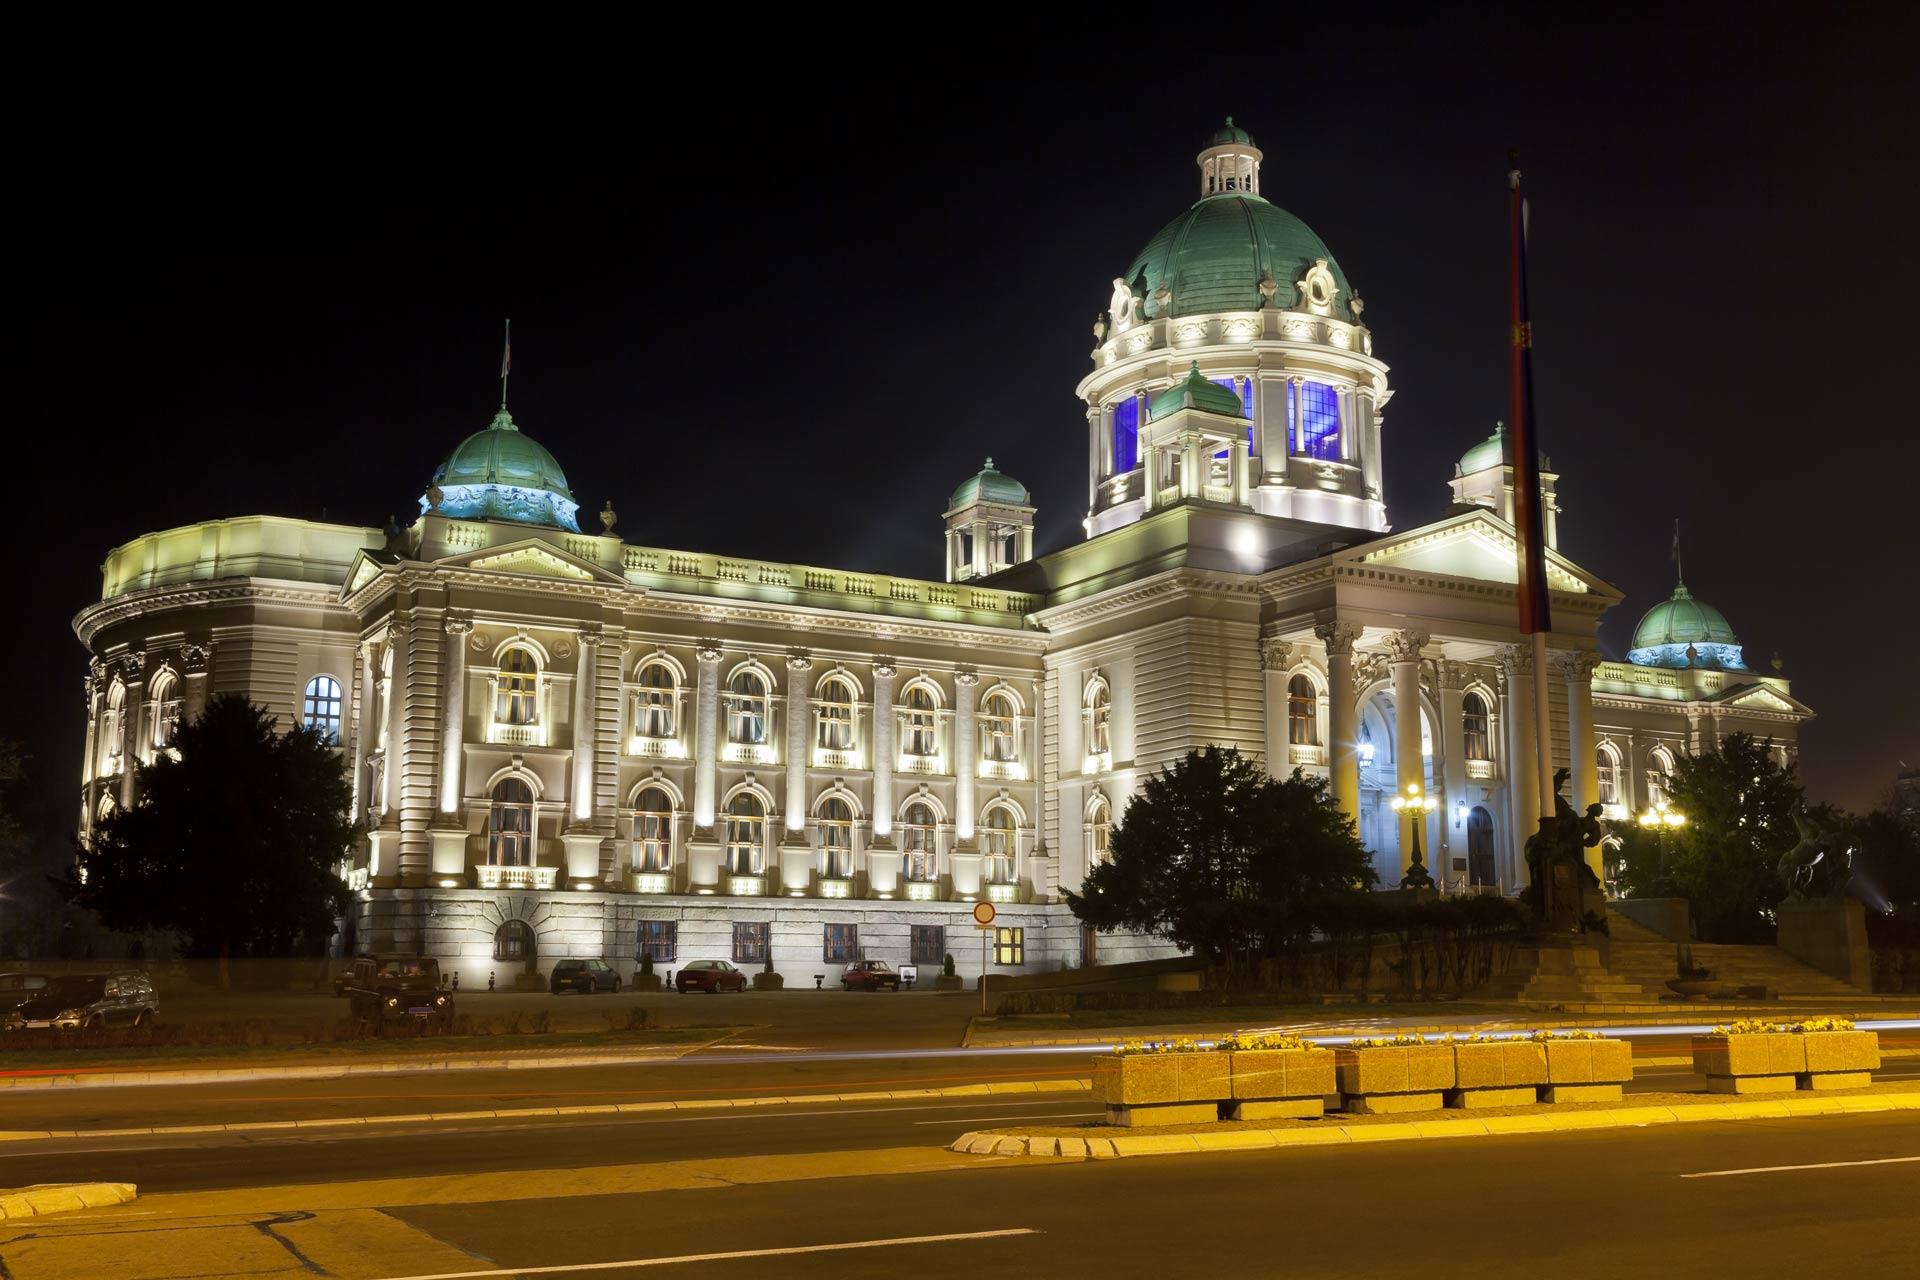 Serbian parliament photographed from the side at night.